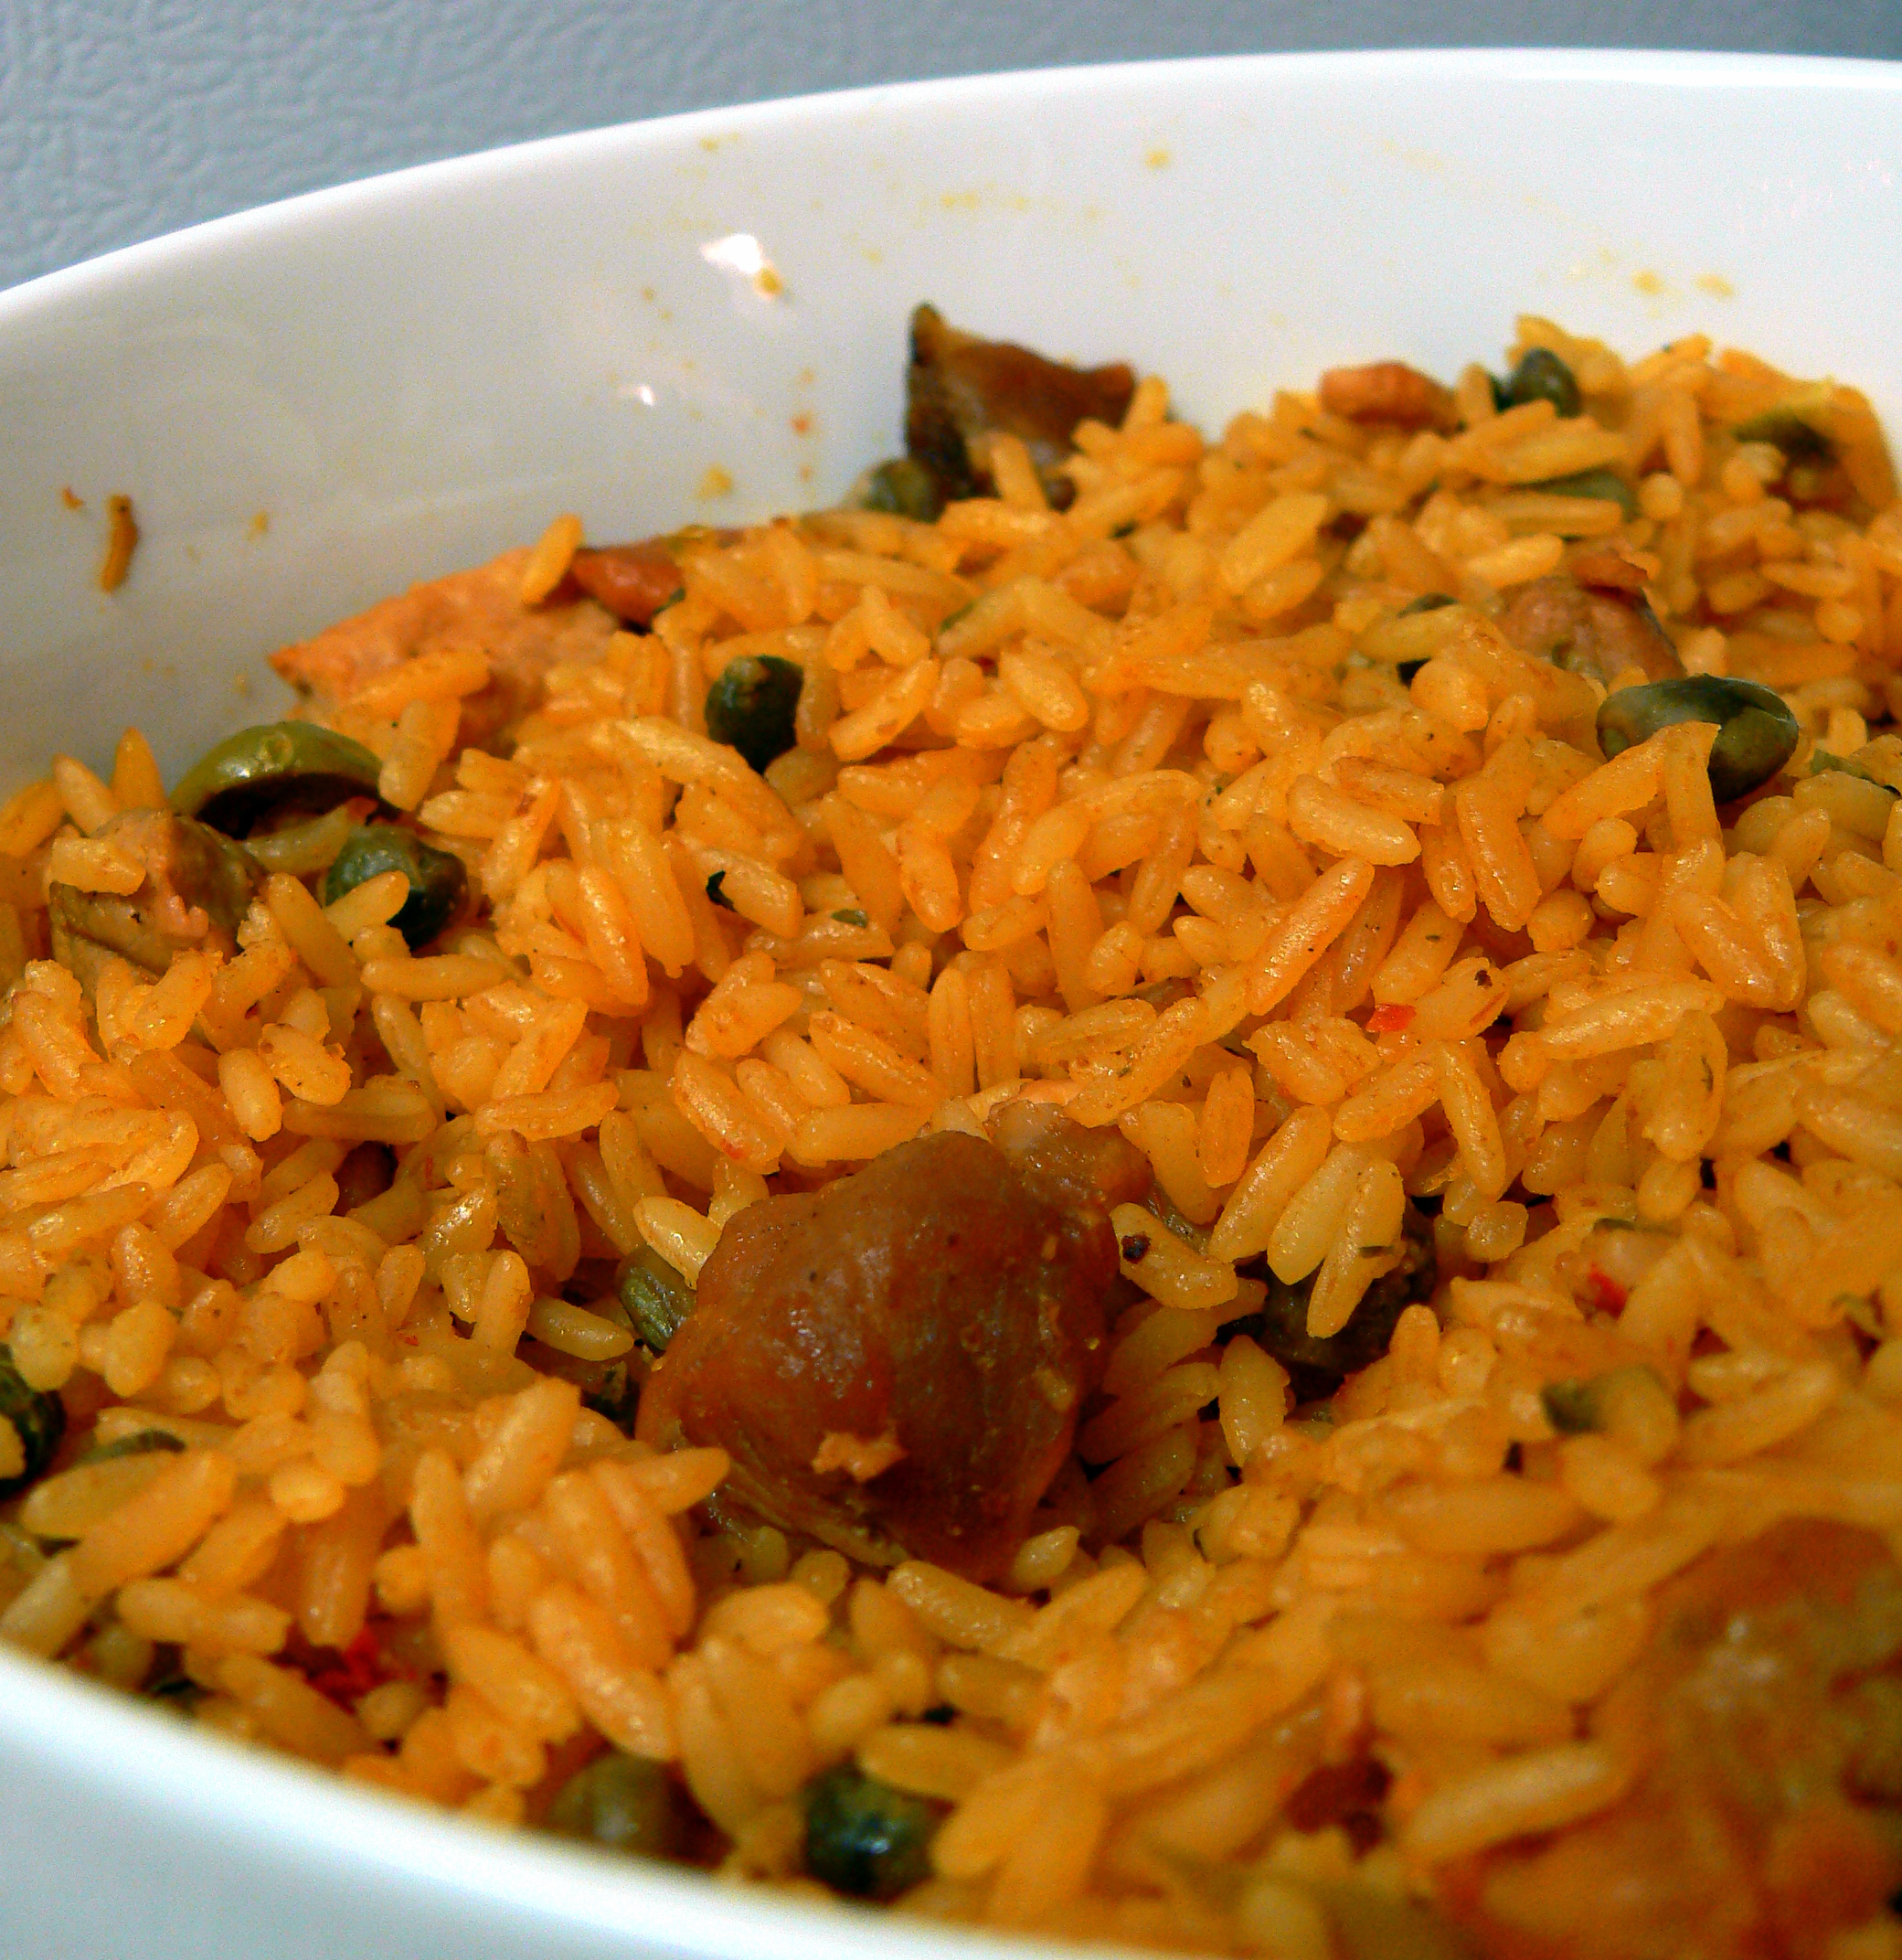 My Mother in law also made: Arroz con gandules (rice with Pigeon Peas ...